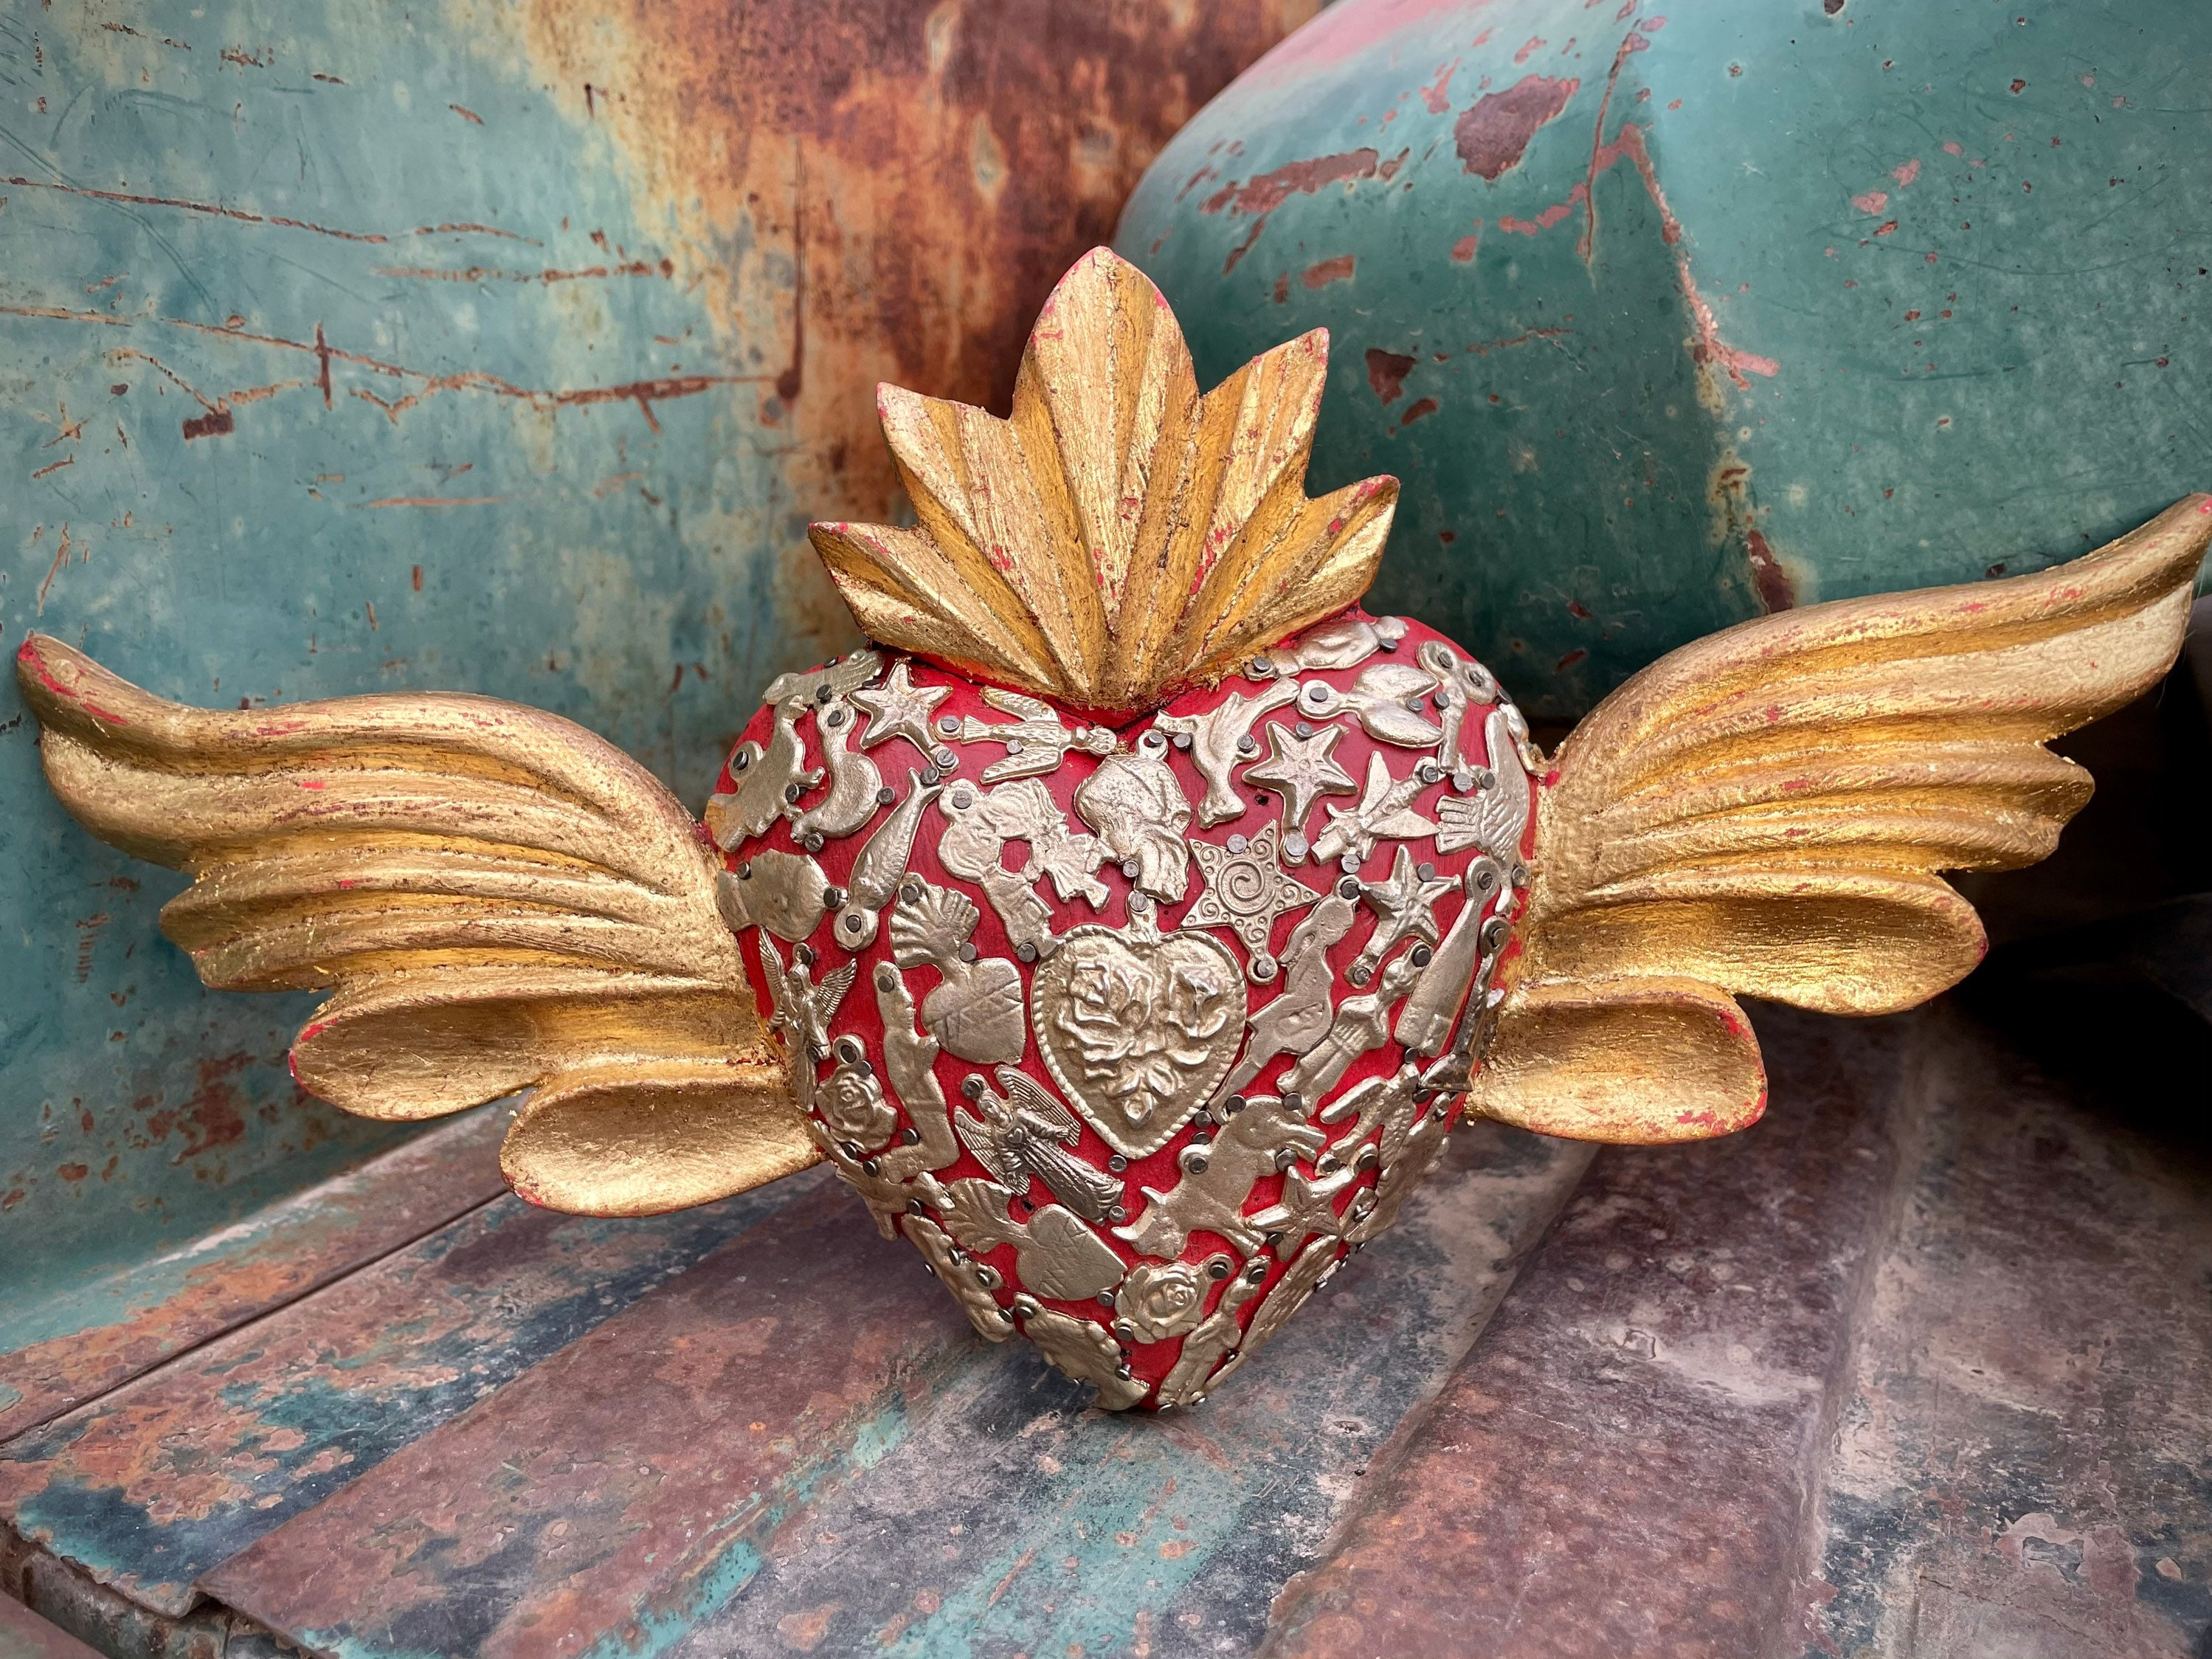 Mexican milagros colorful sacred heart former Mexican vote with wings